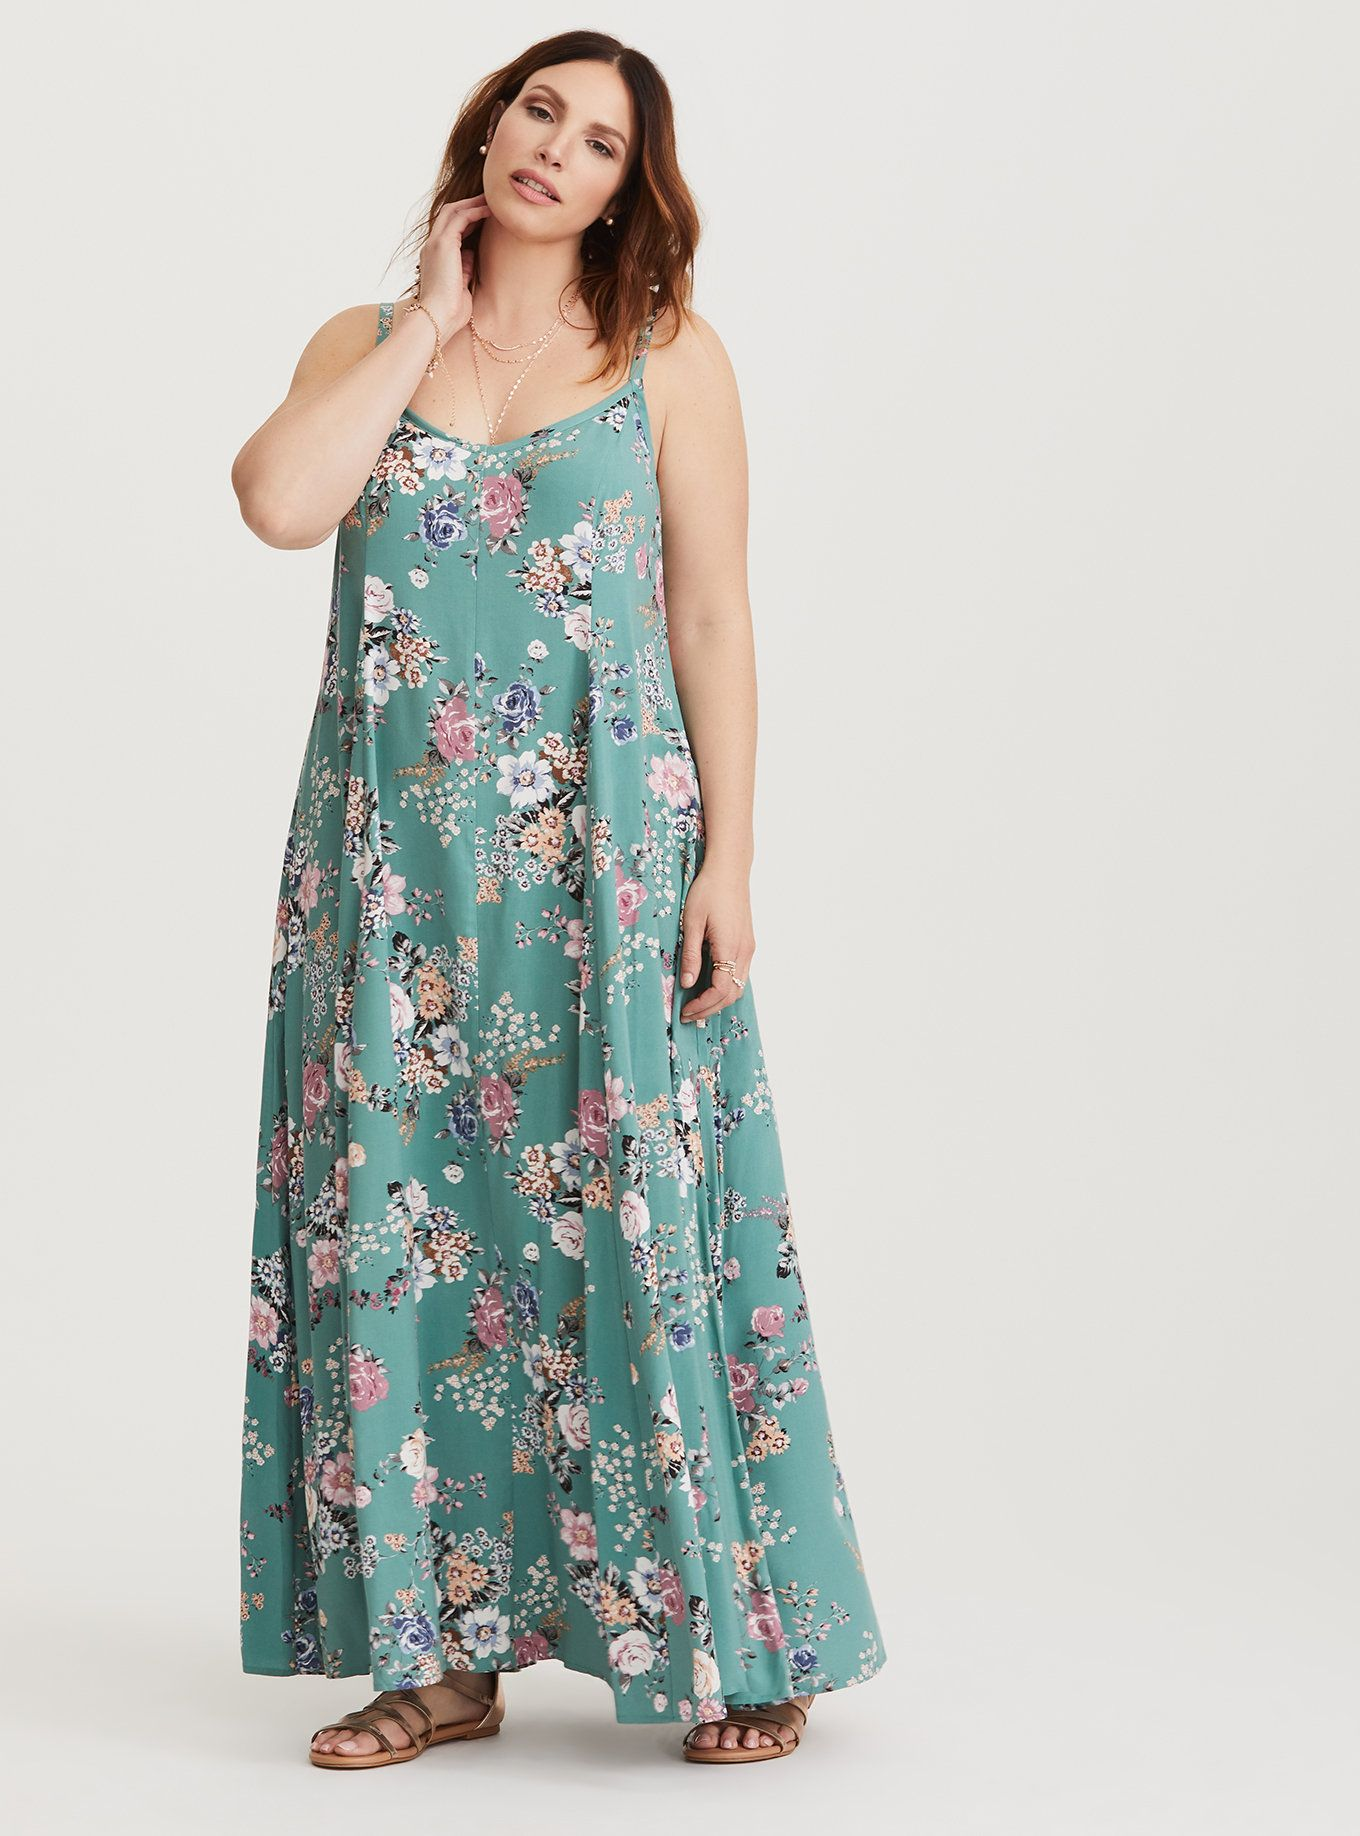 675ed007980 Plus Size Women S Clothing Baton Rouge. Plus Size Floral Trapeze Challis Maxi  Dress